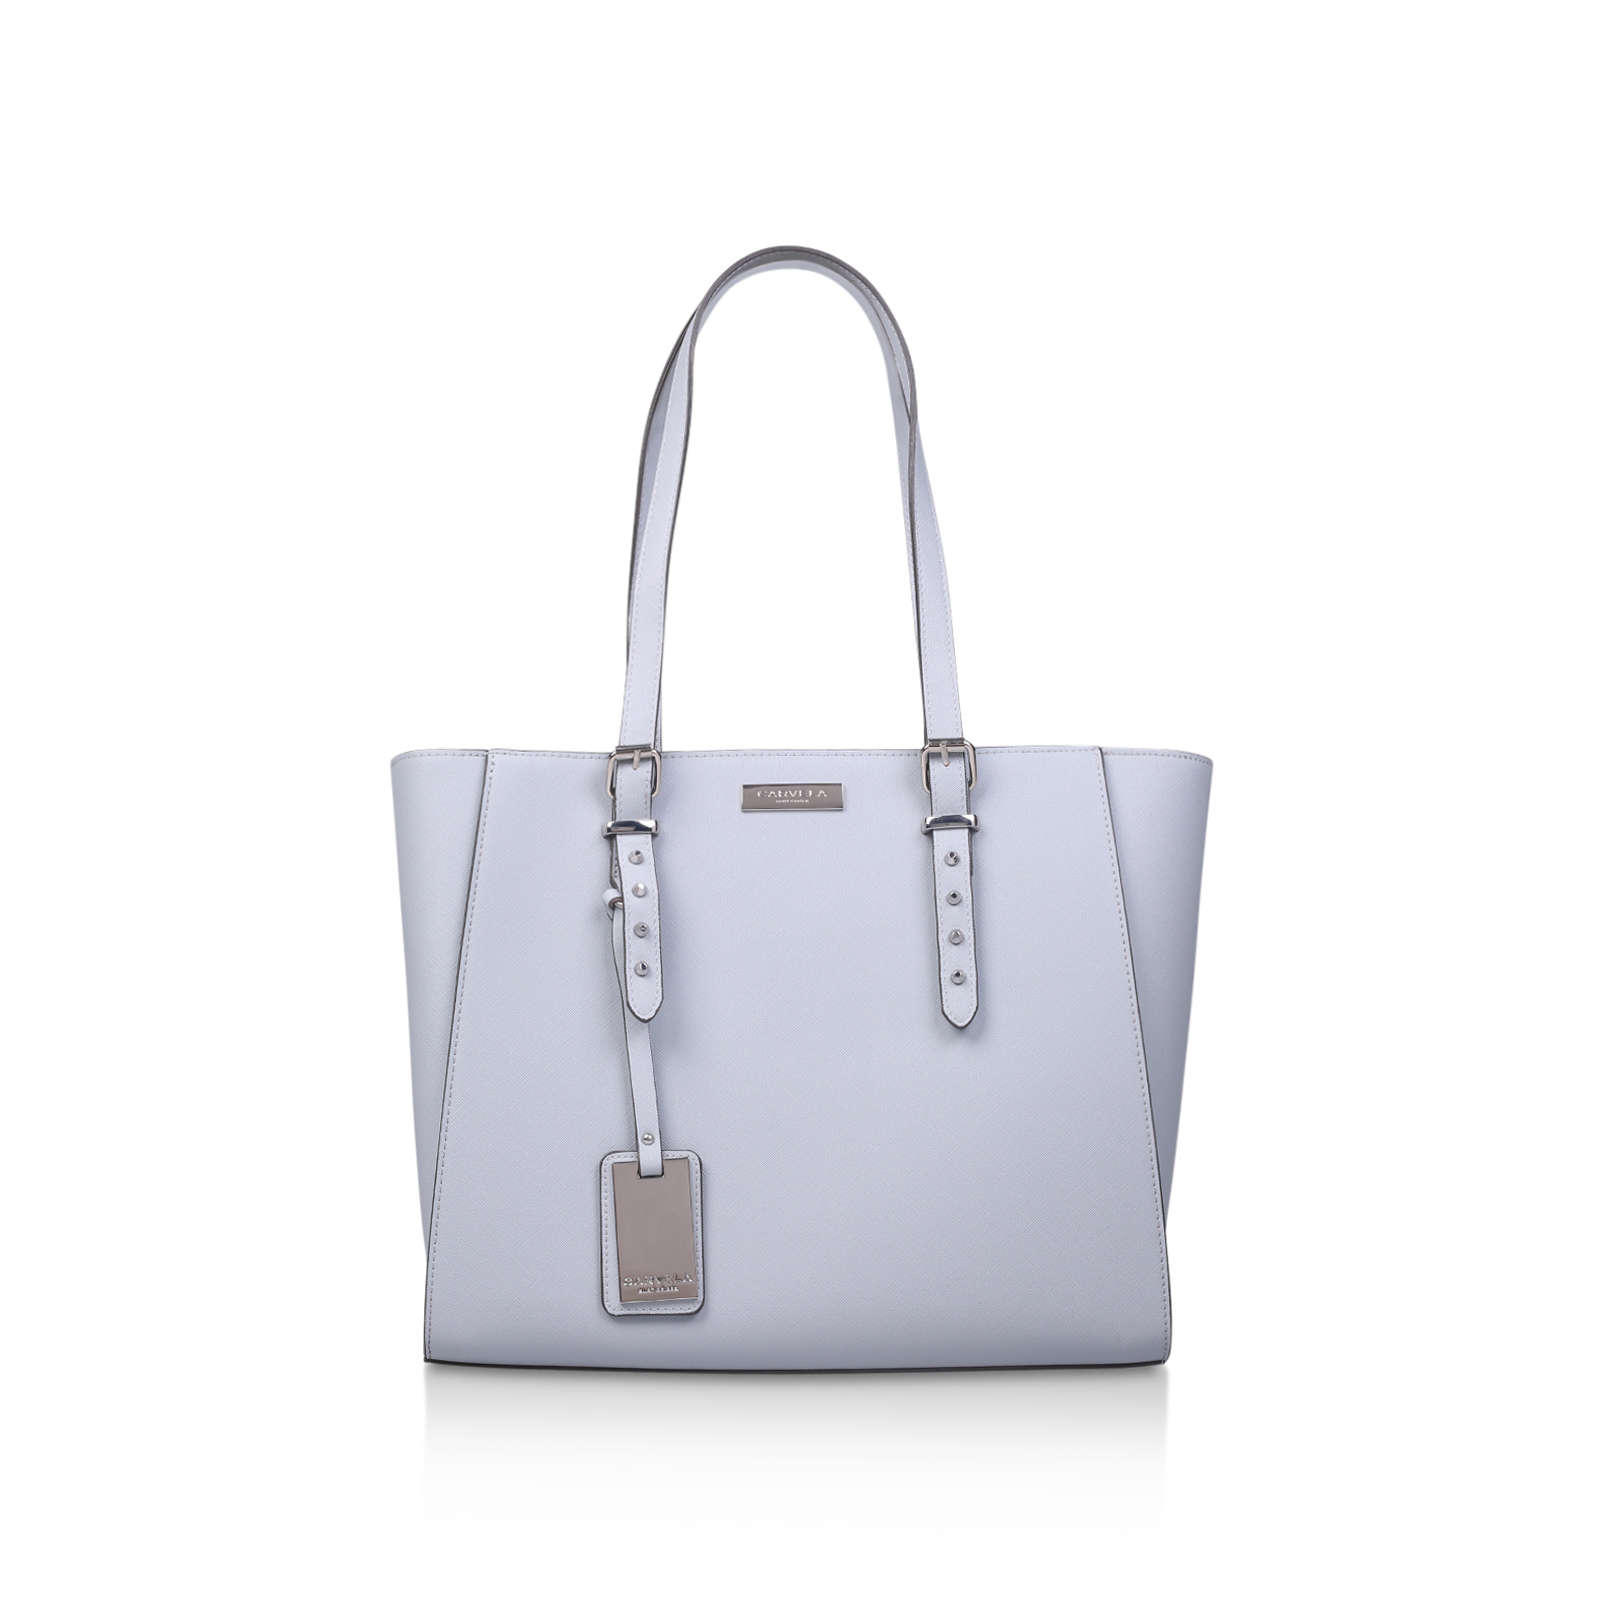 SAMMY STUD WINGED TOTE